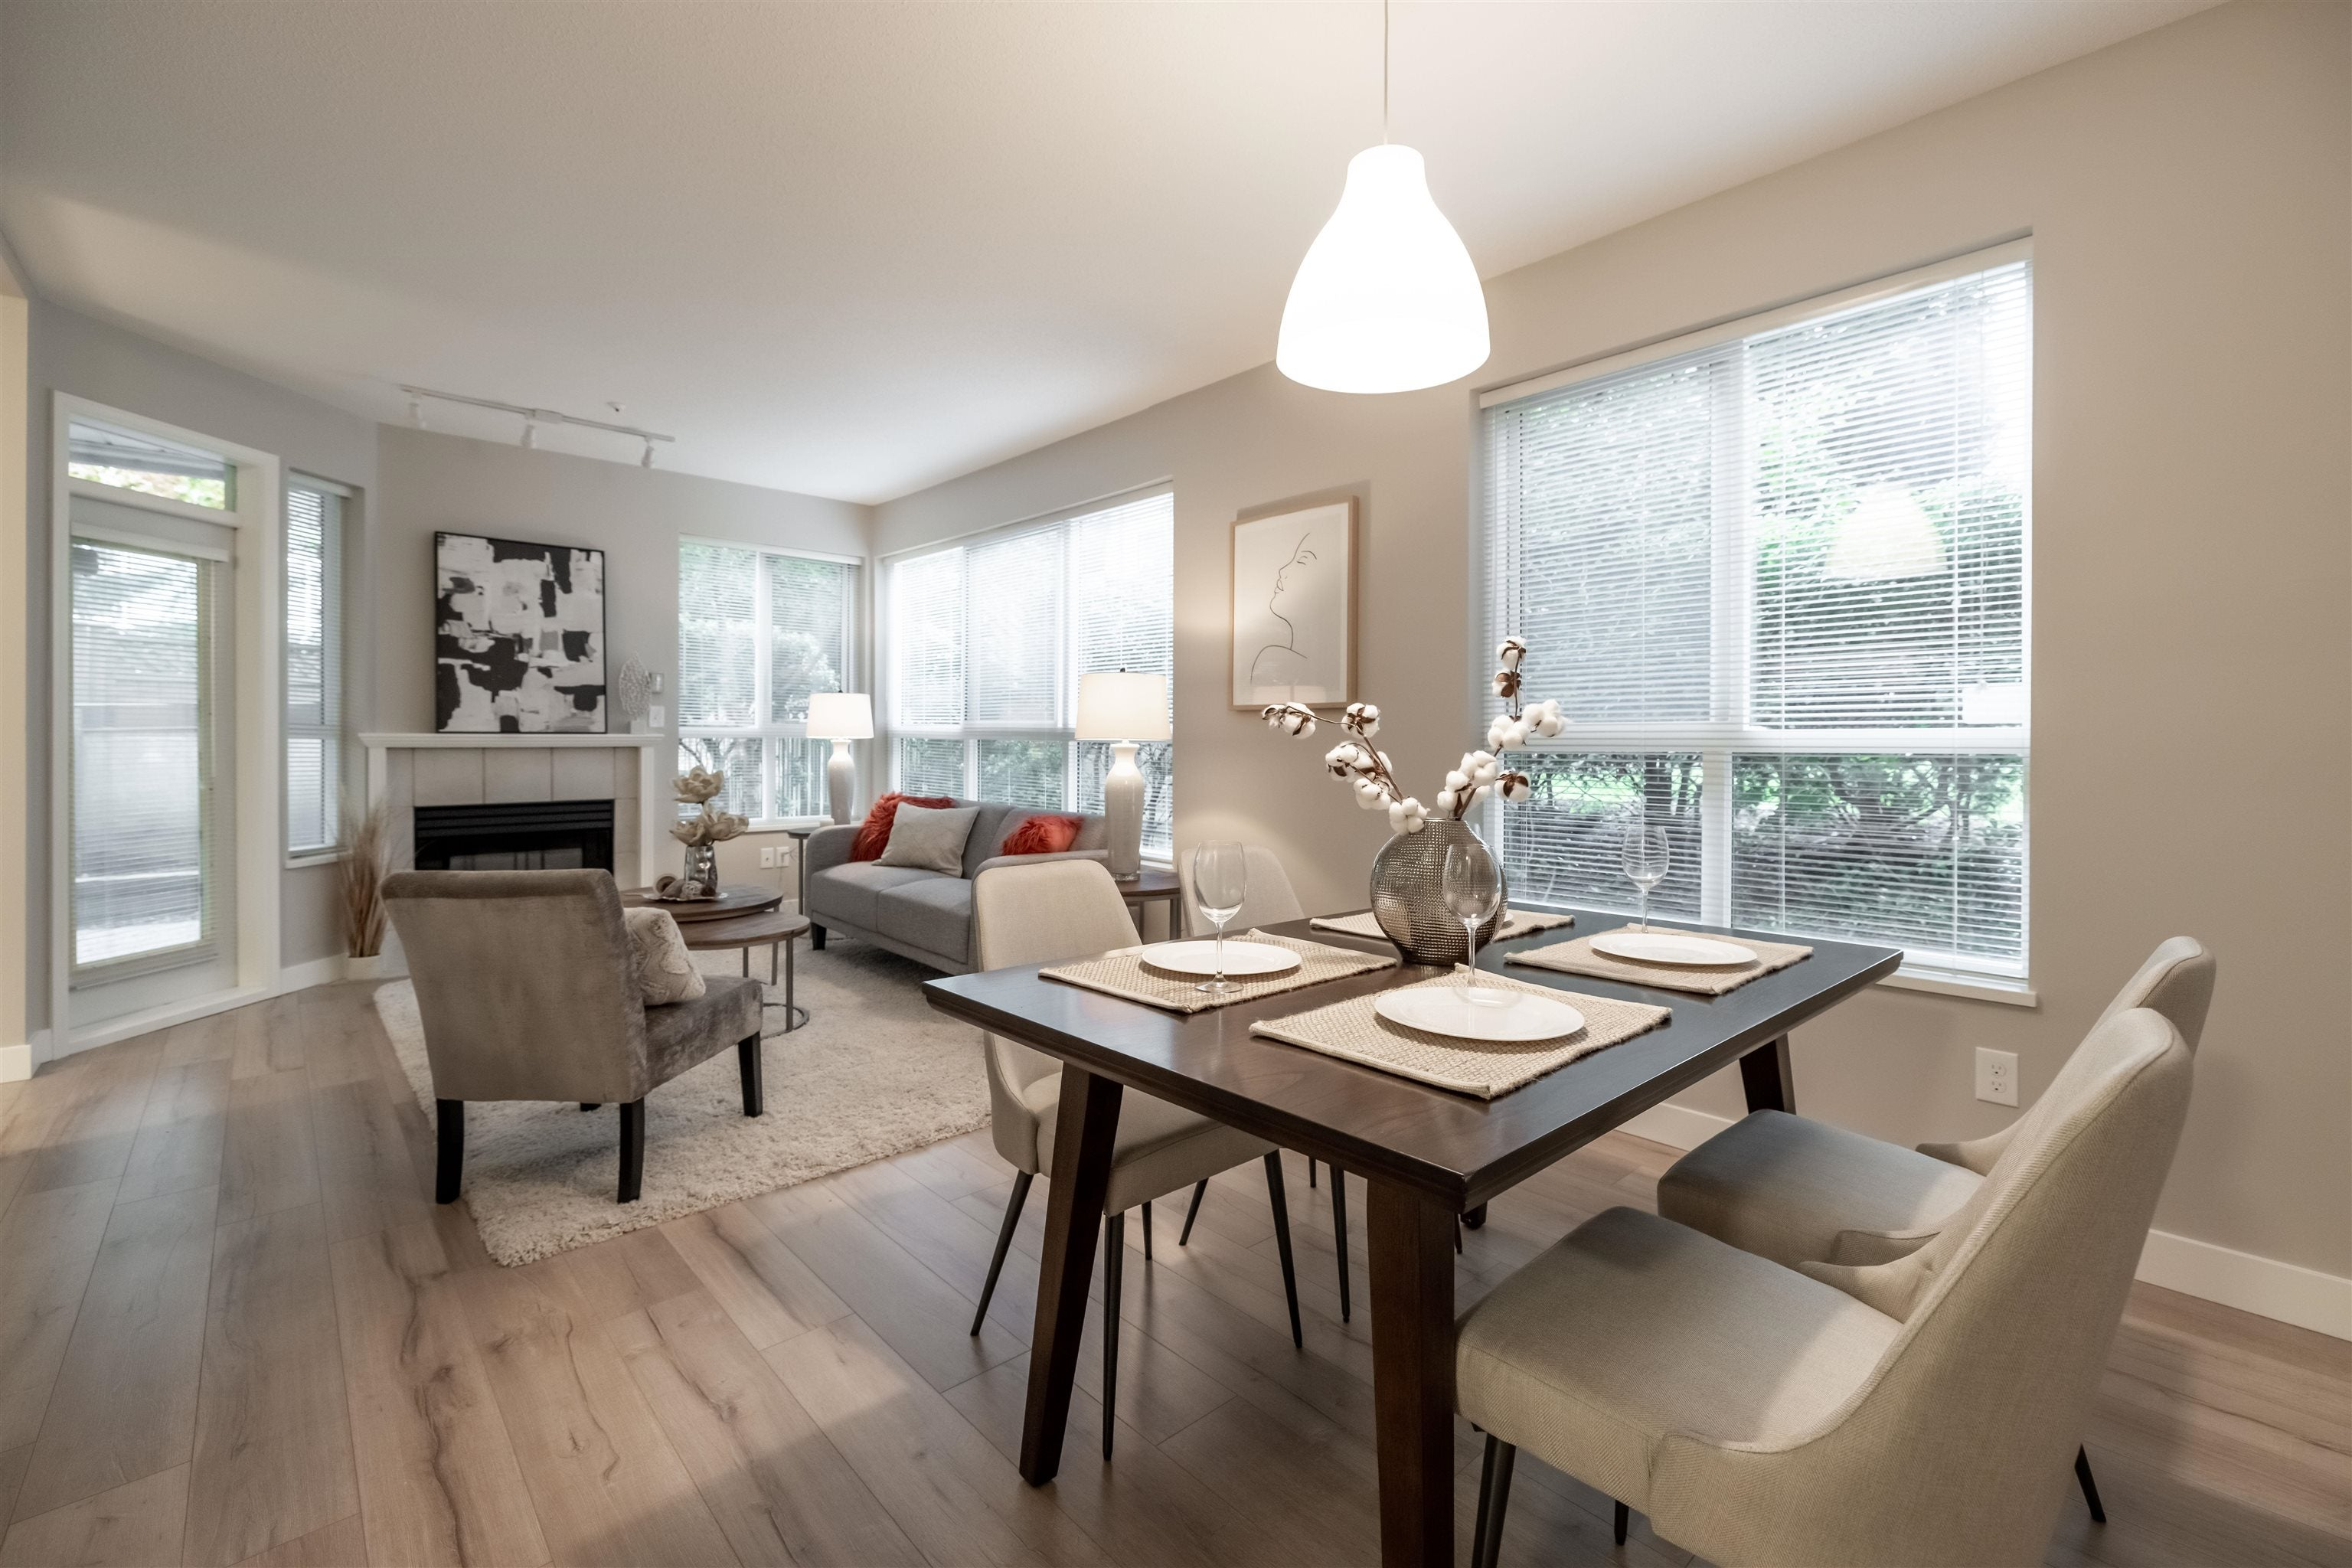 105 8139 121A STREET - Queen Mary Park Surrey Apartment/Condo for sale, 2 Bedrooms (R2623168) - #17